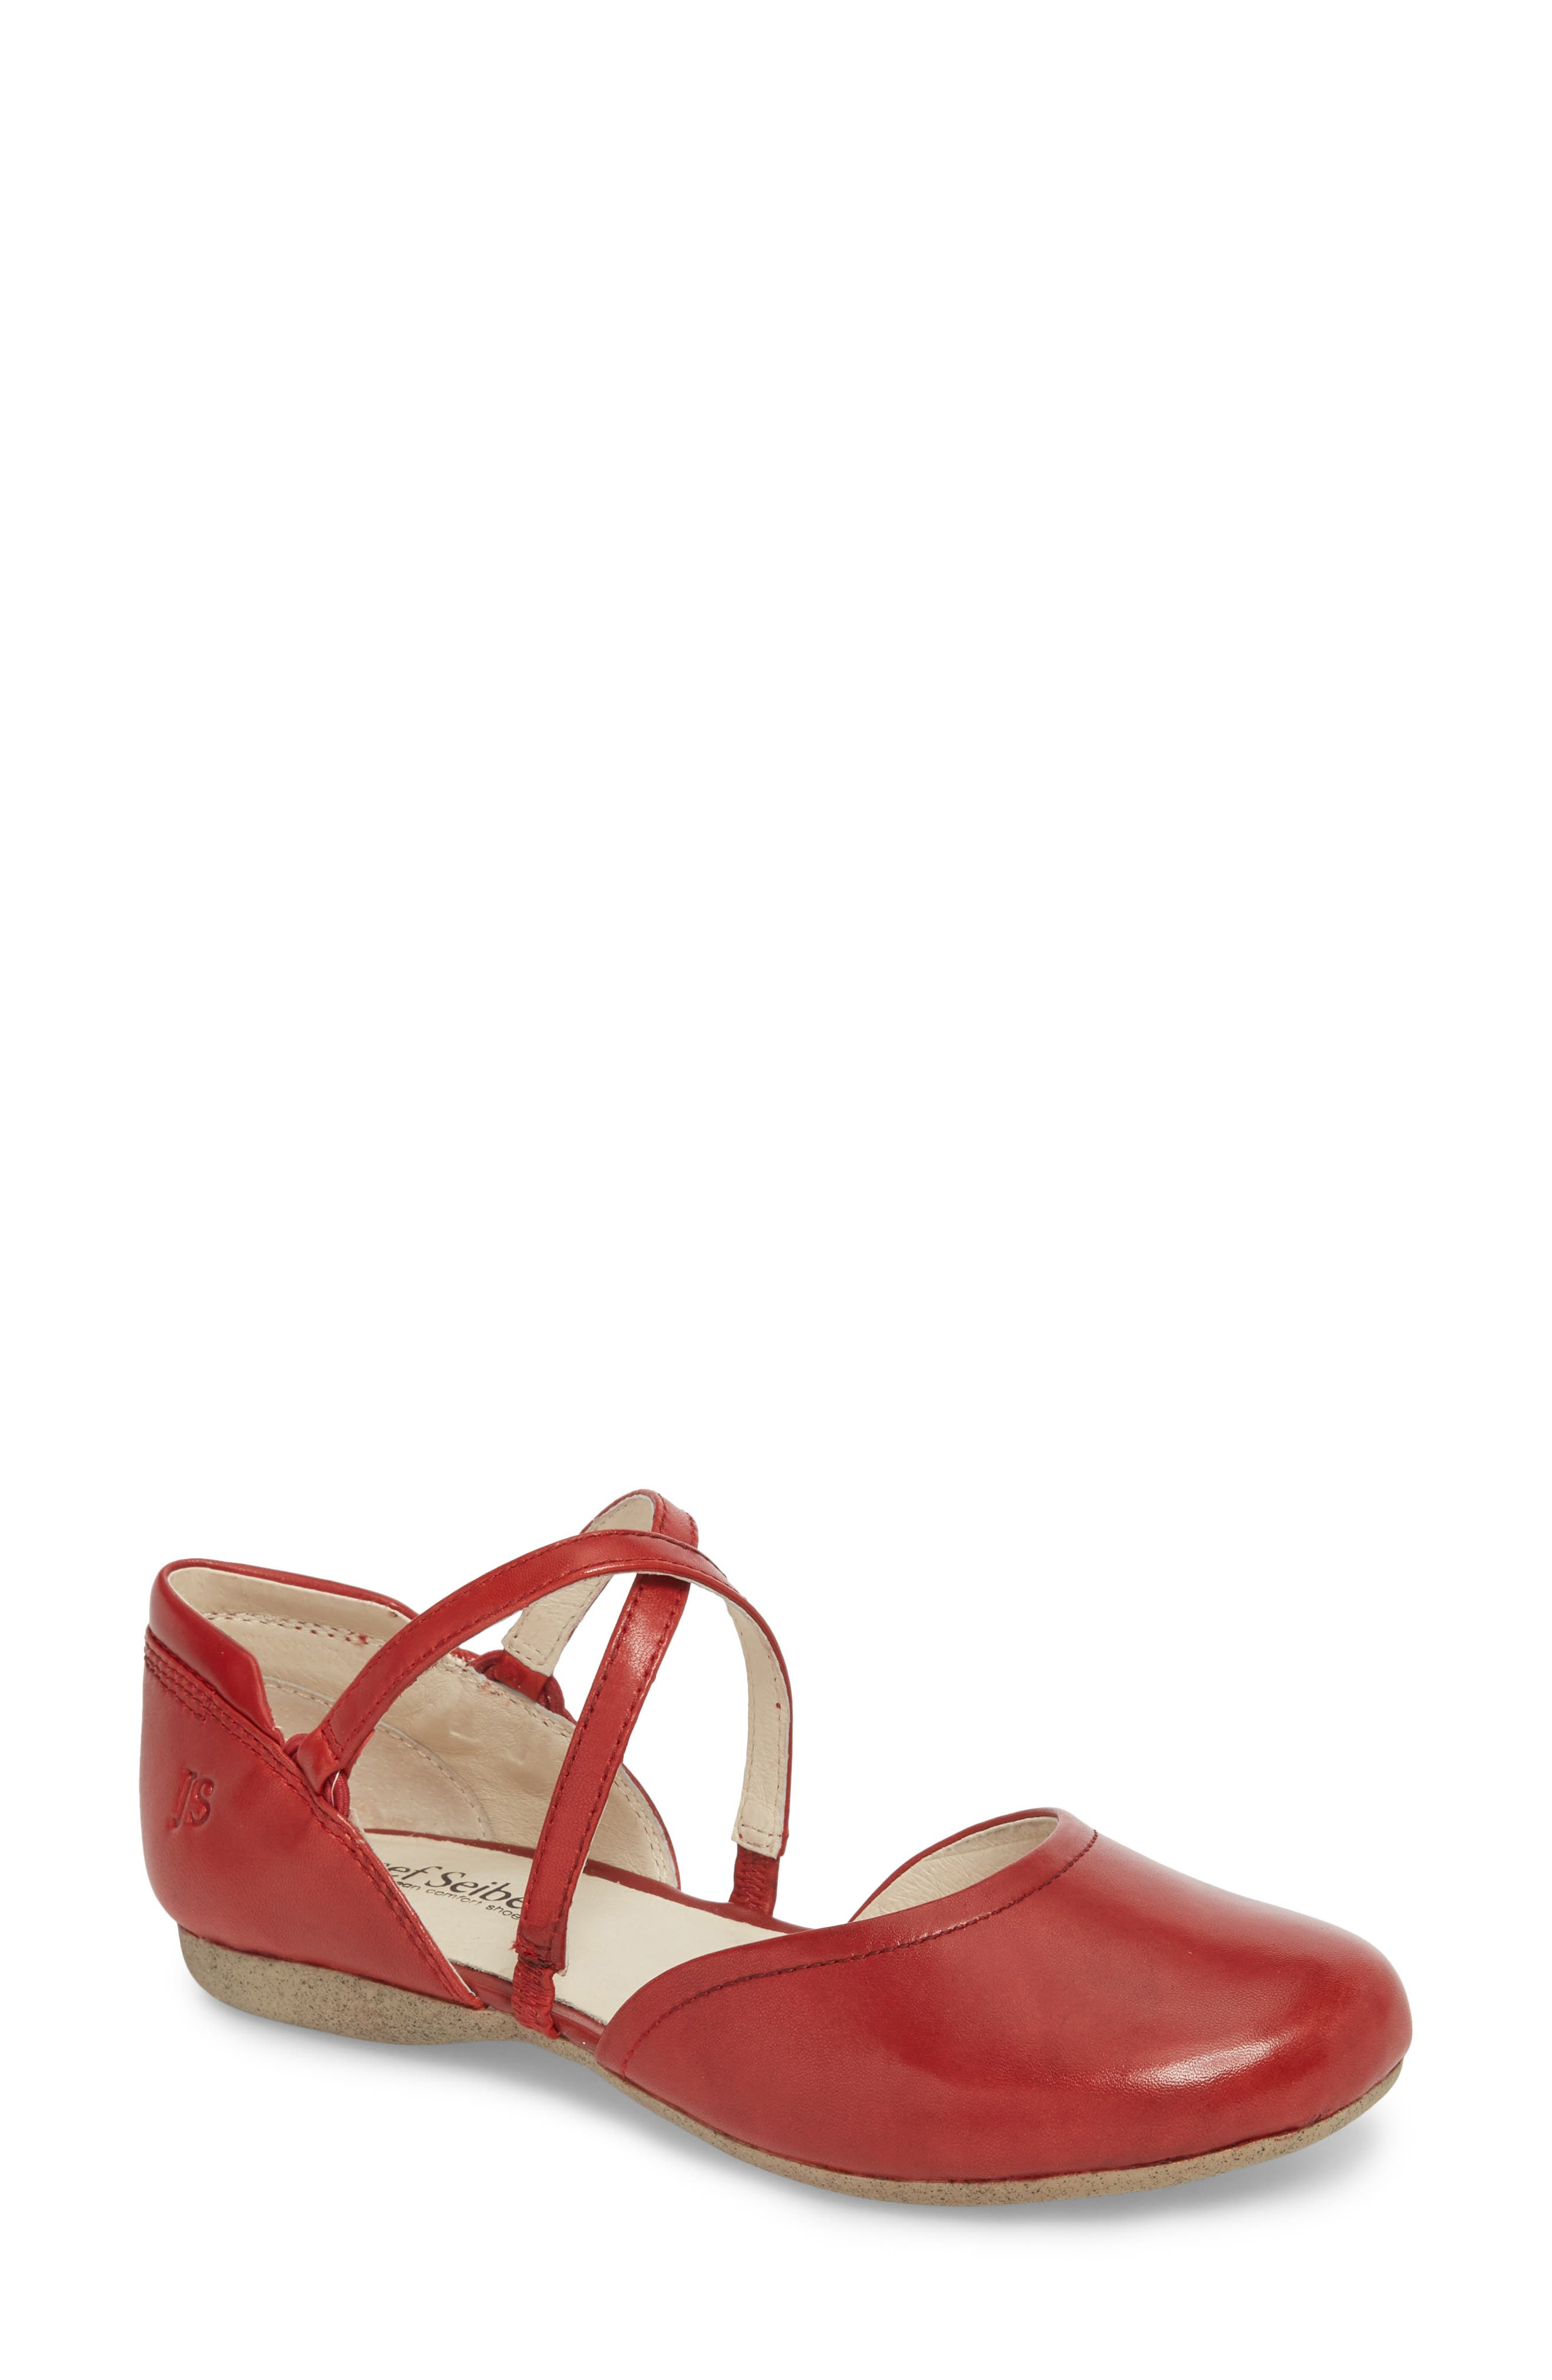 Fiona 41 Flat,                             Main thumbnail 1, color,                             Red Leather